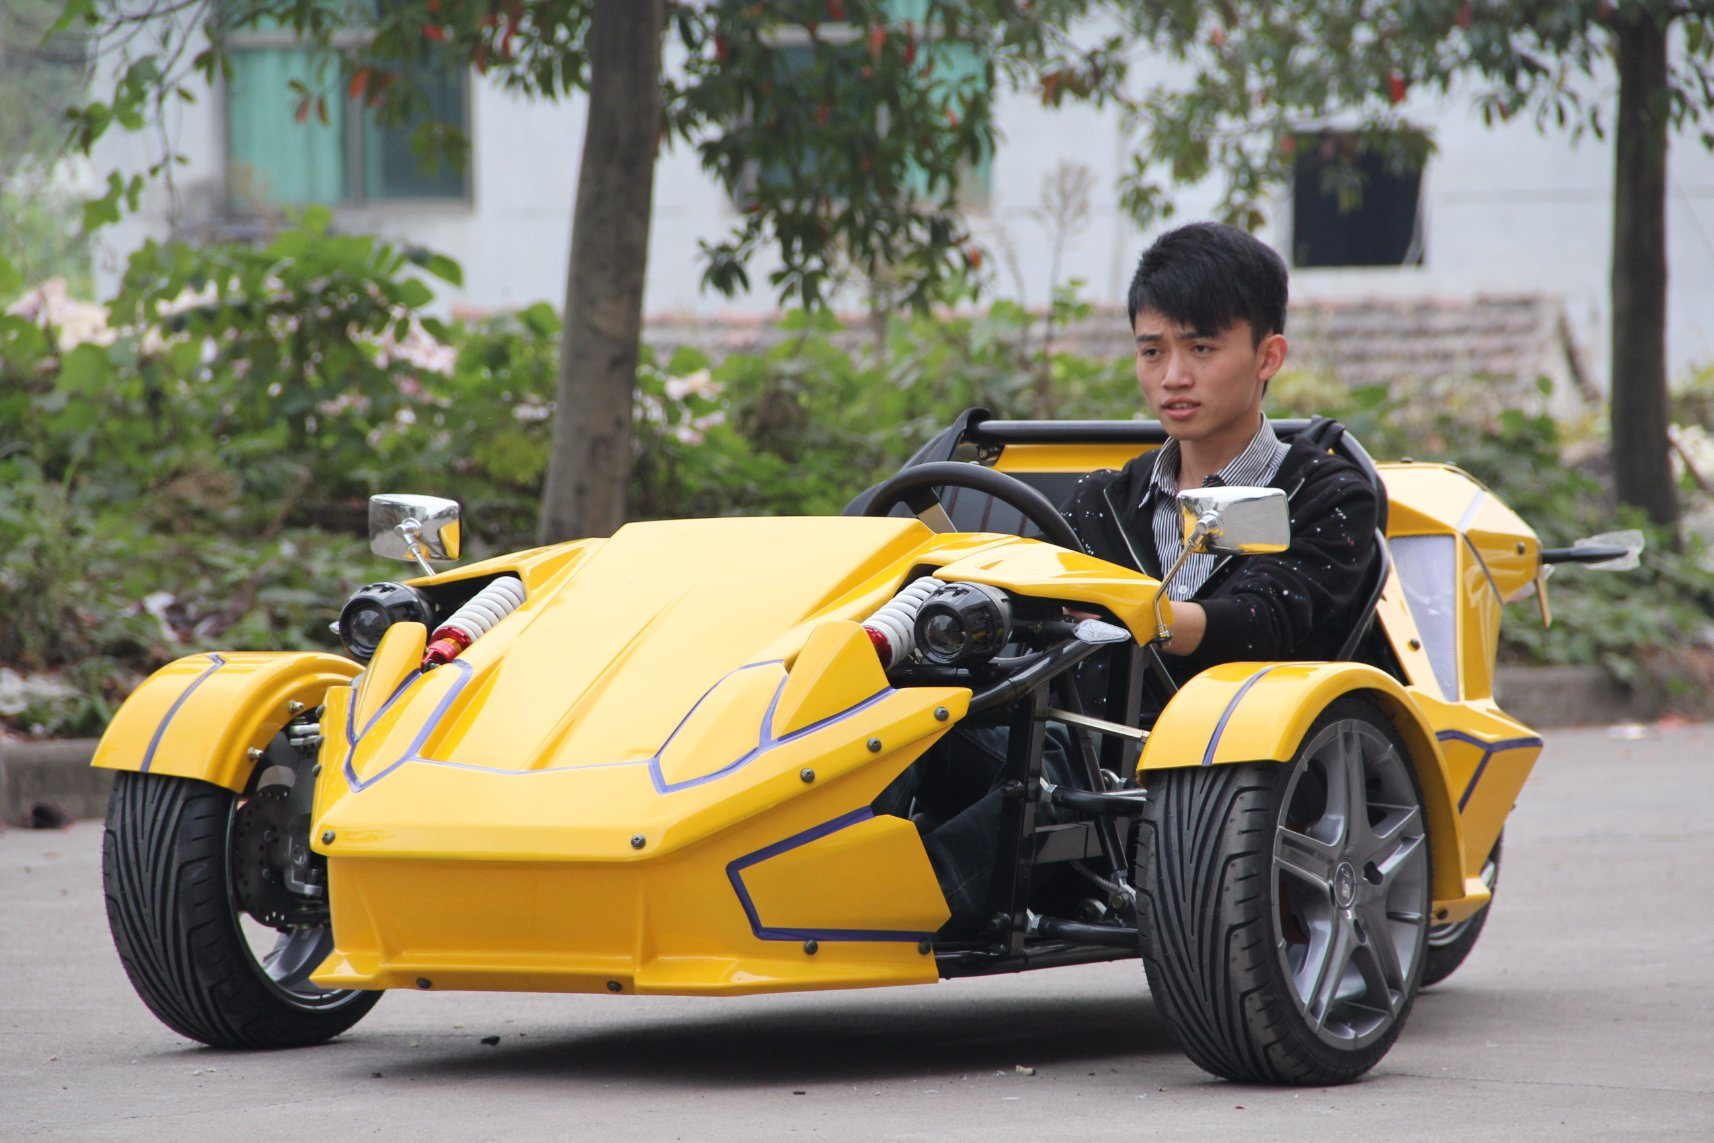 Smart Trike Motorcycle with 2 Seats